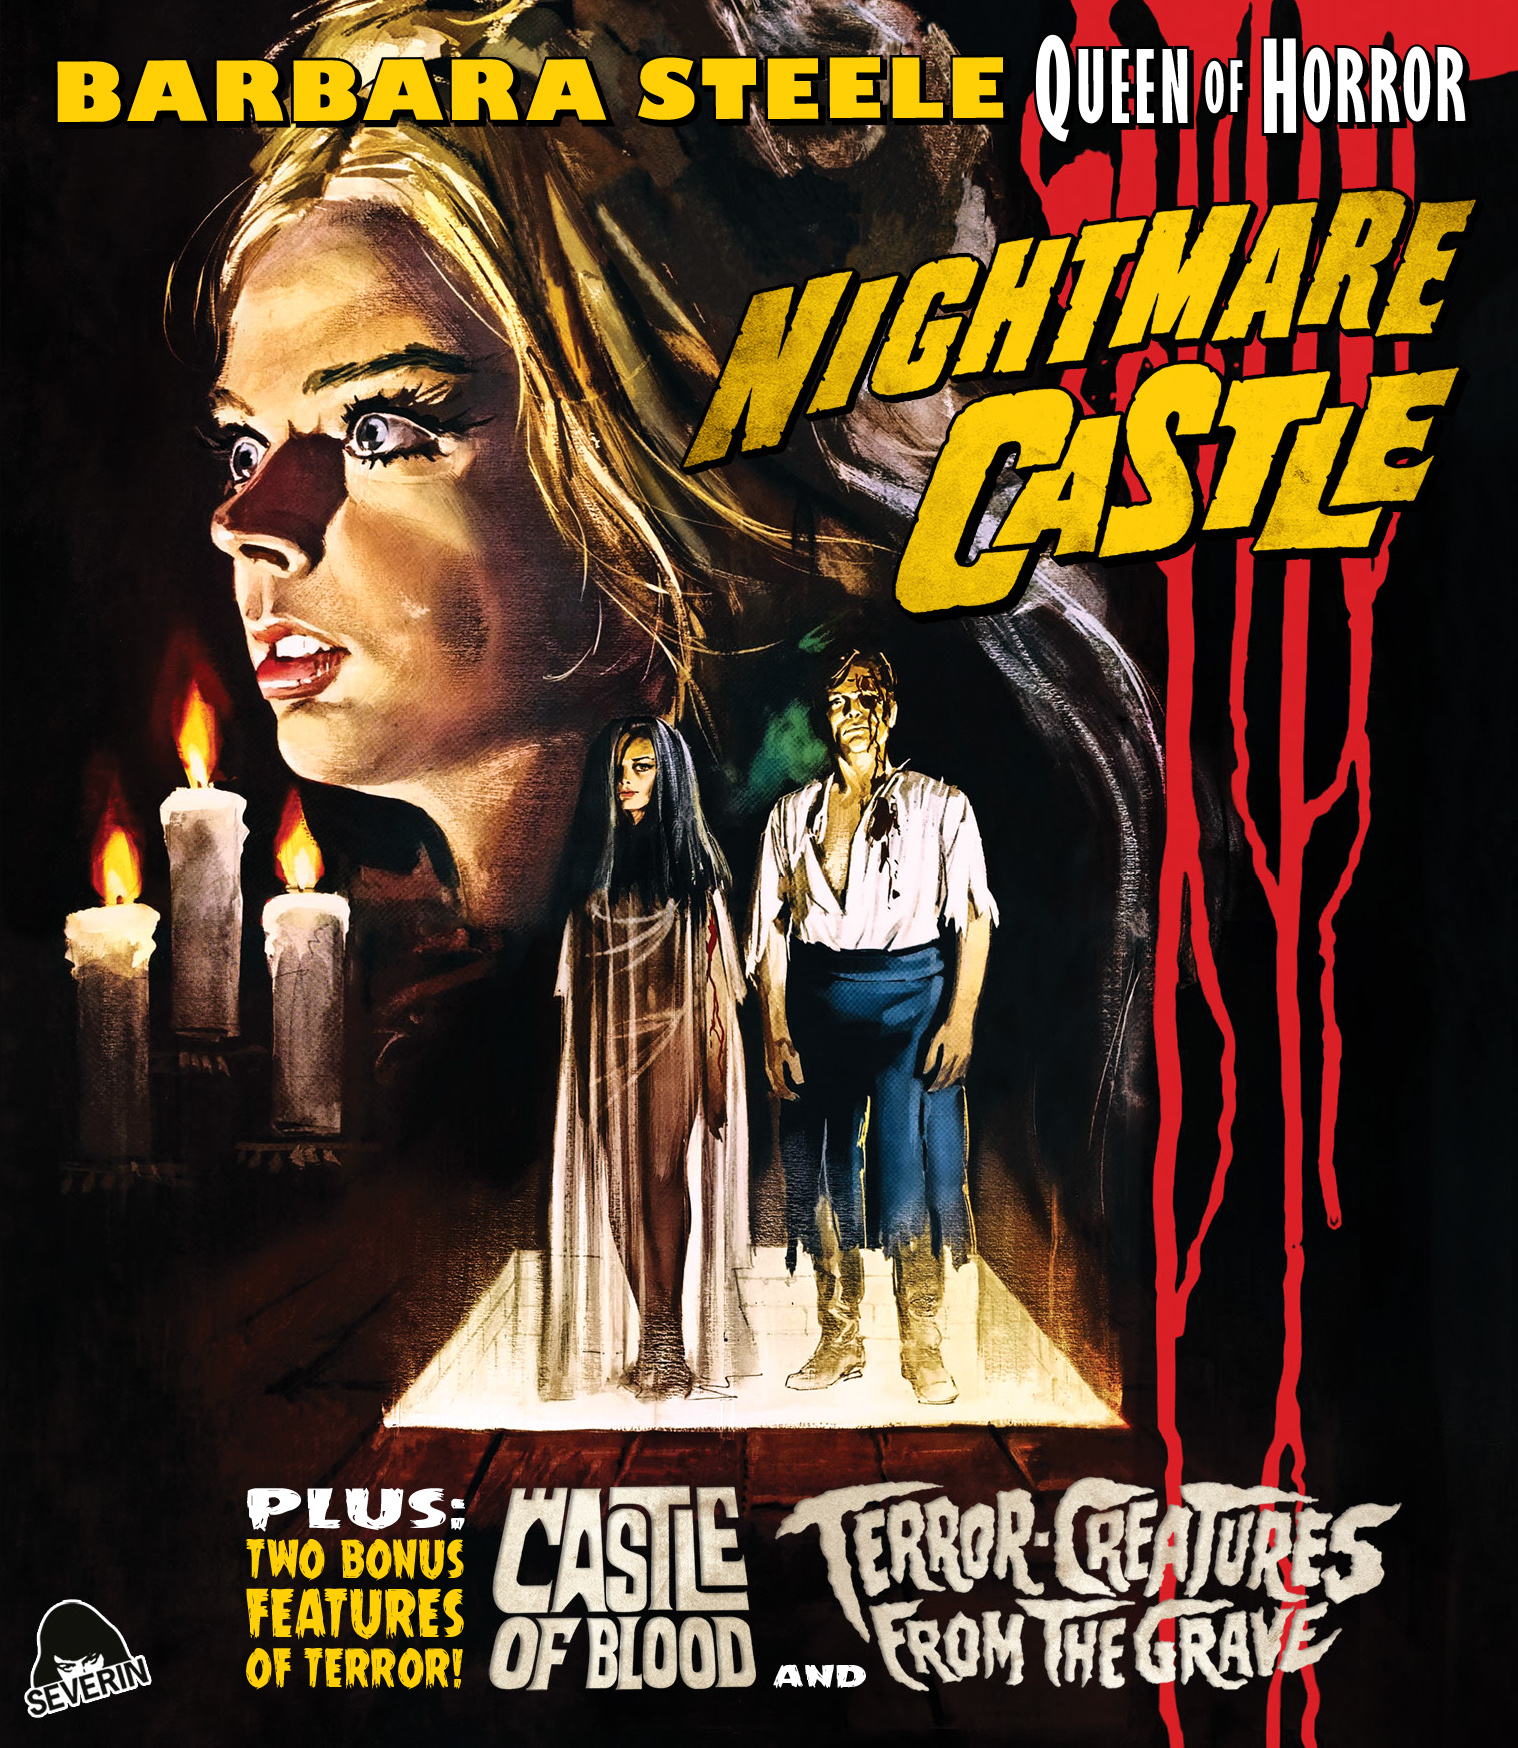 Severin Films Announces 'Nightmare Castle' And More On Blu-ray